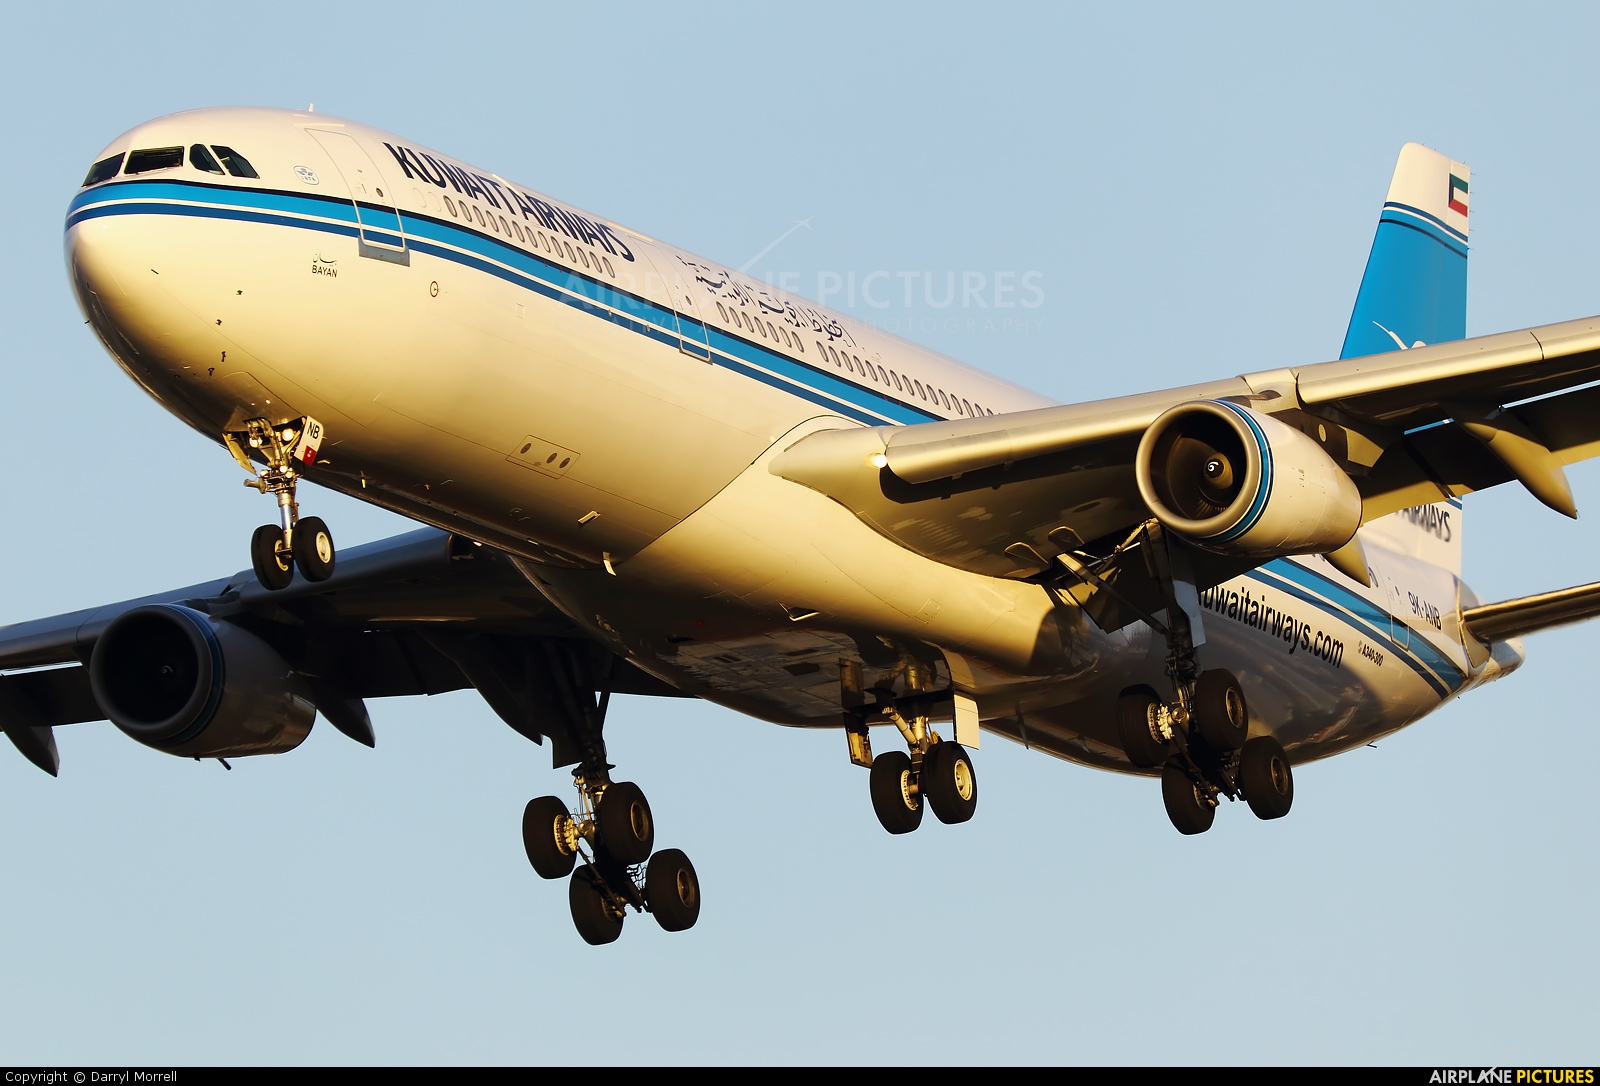 Kuwait Airways 9K-ANB aircraft at London - Heathrow